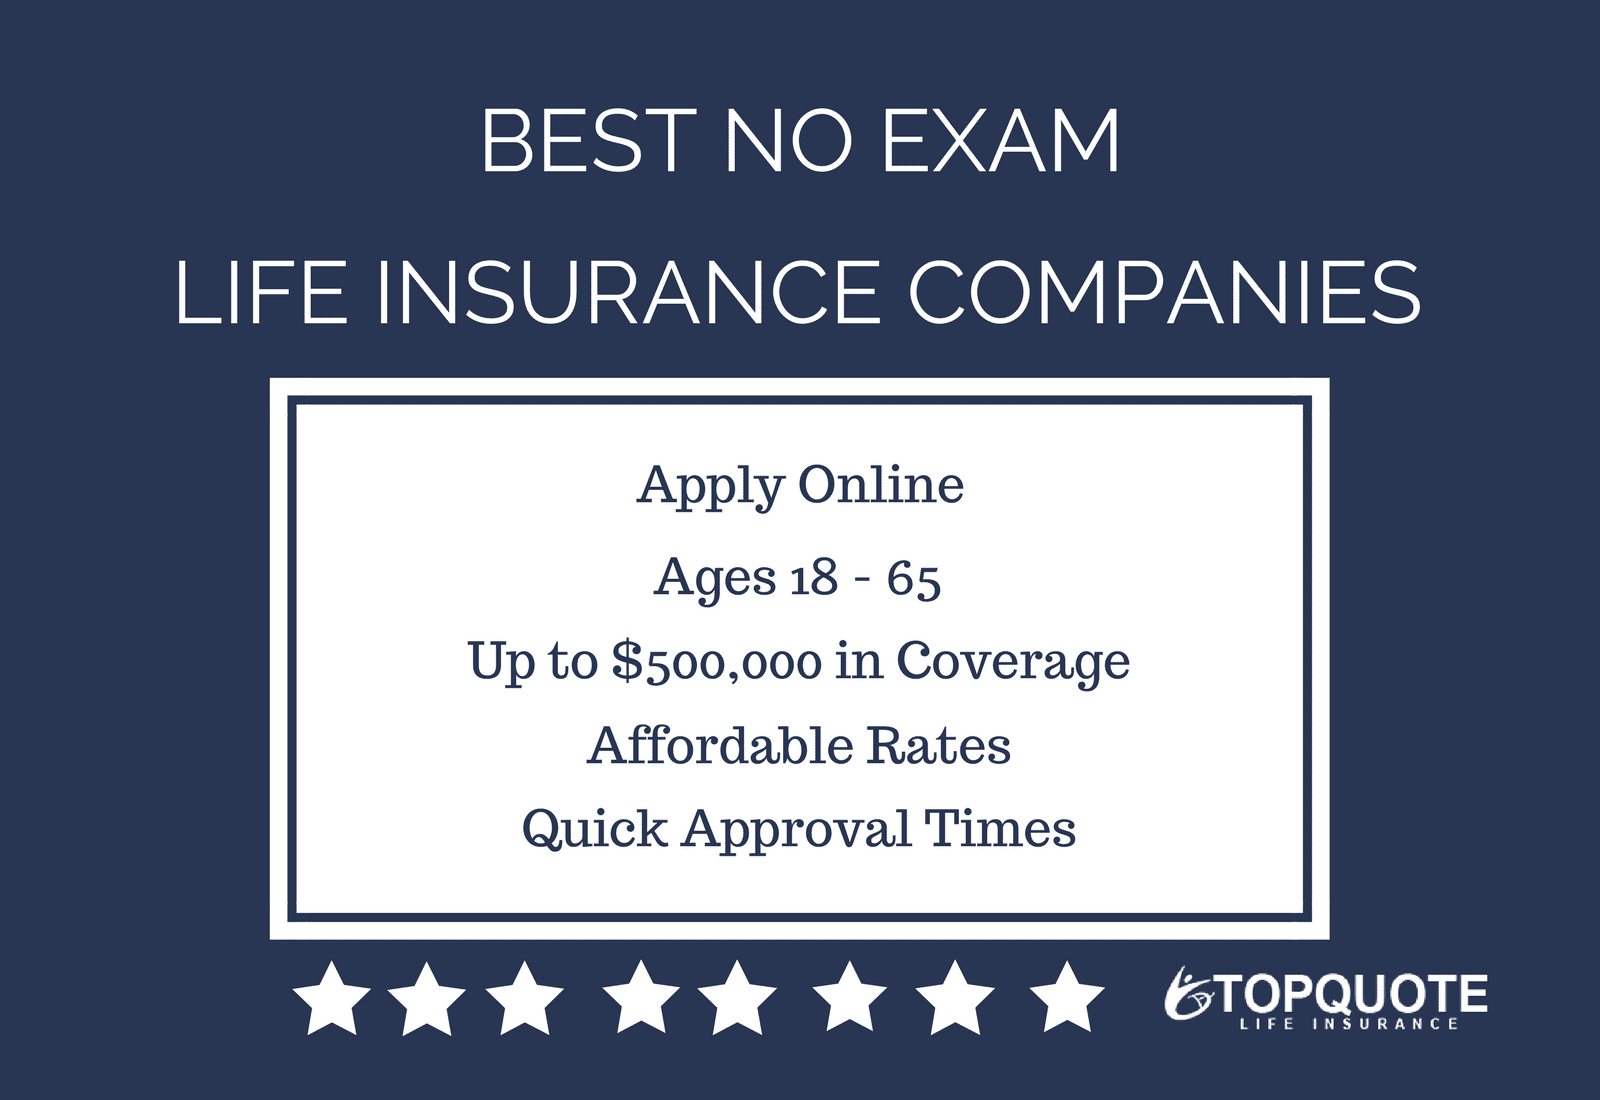 State Farm Life Insurance Quotes Best Instant Approval No Exam Life Insurance Quotes